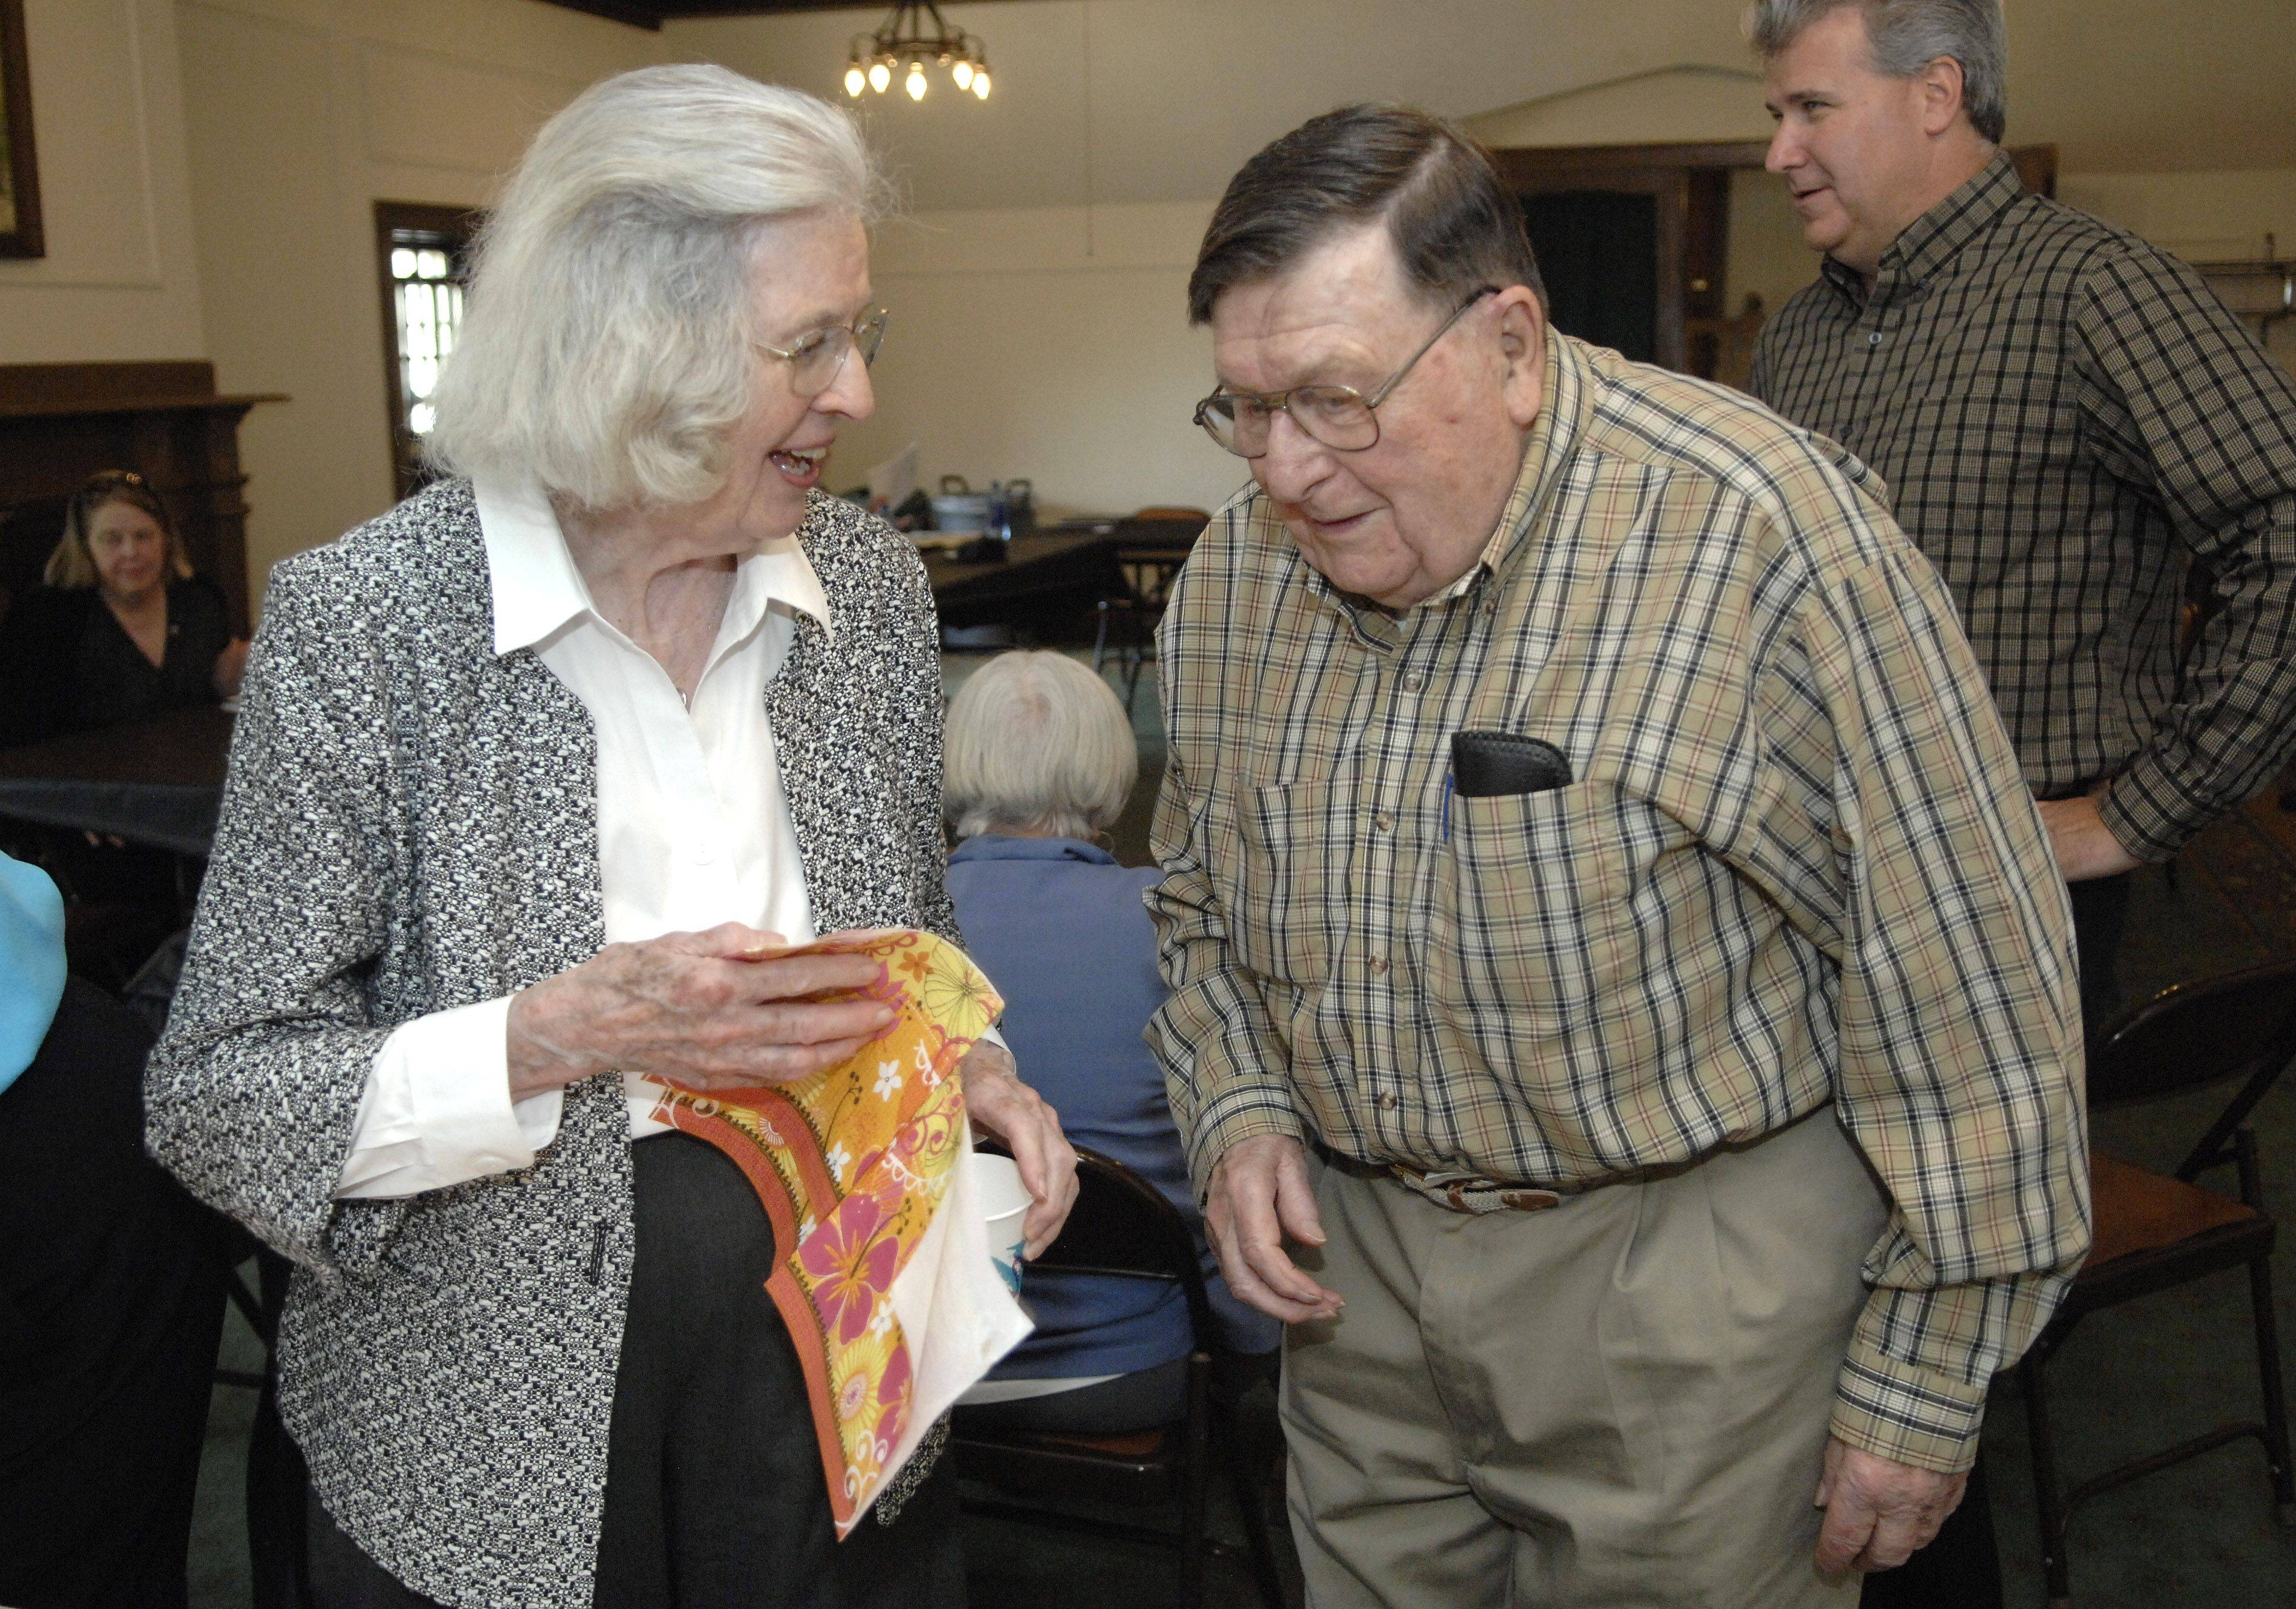 Barbara Anderson and Melvin Peterson chat while waiting in line for cake and ice cream at the Baker Community Center annual board of directors meeting May 19. Anderson has been on the board for 55 years and Peterson for 68 years.